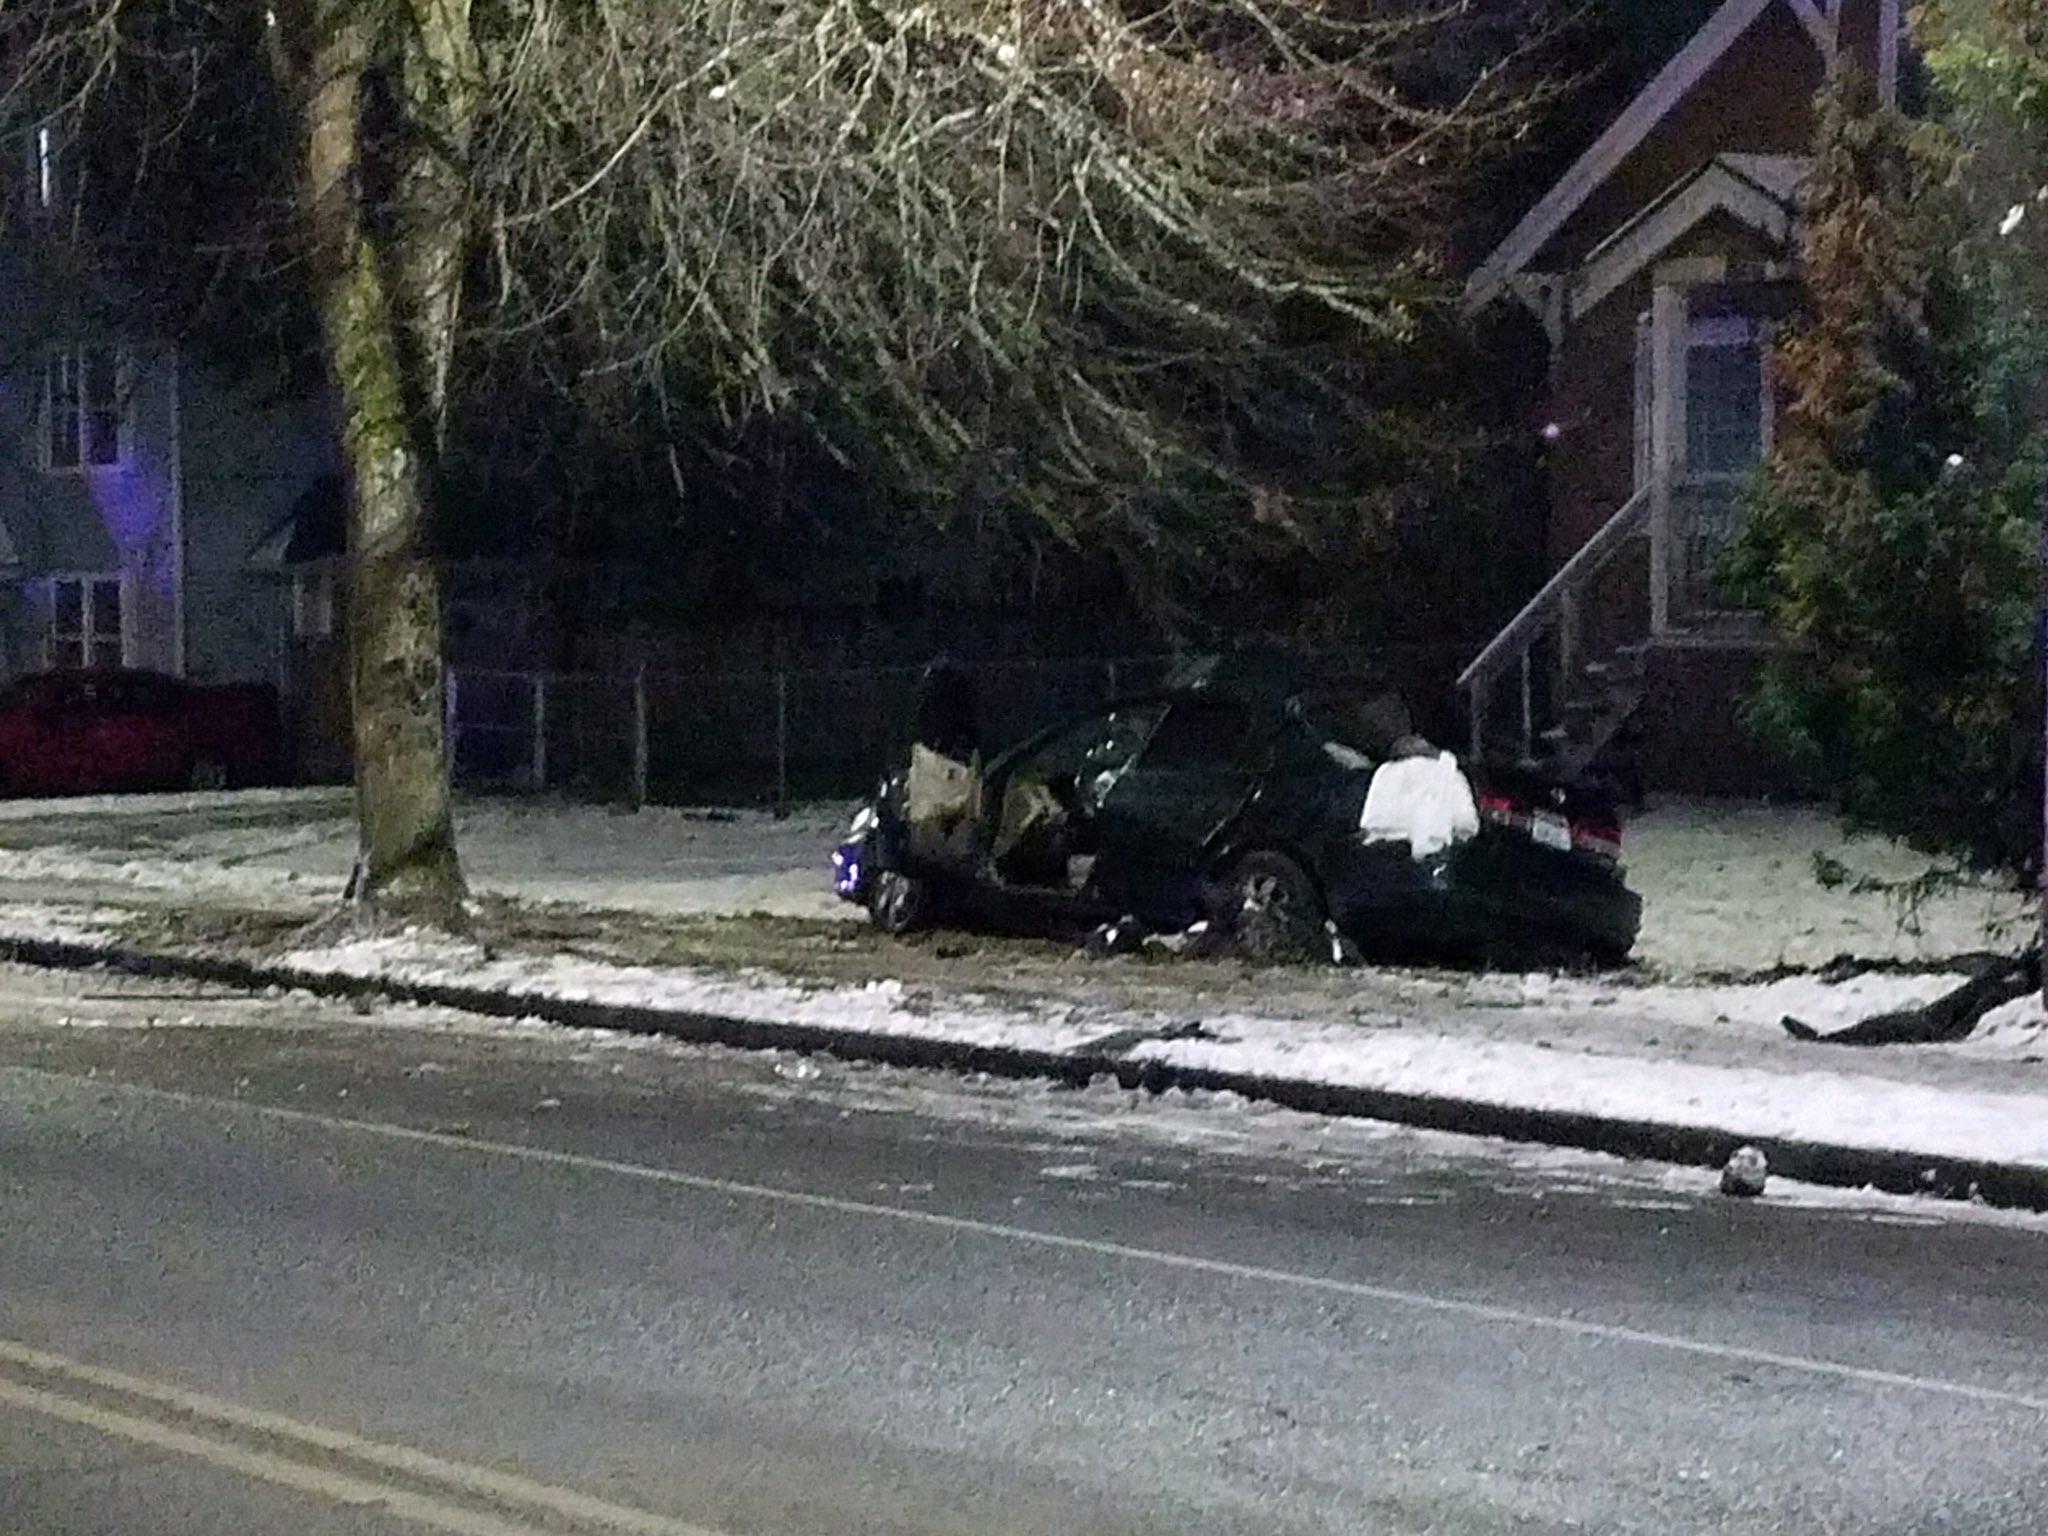 Wreckage left after car crashes into tree in Burien. (Photo: King County Sheriff's Office)